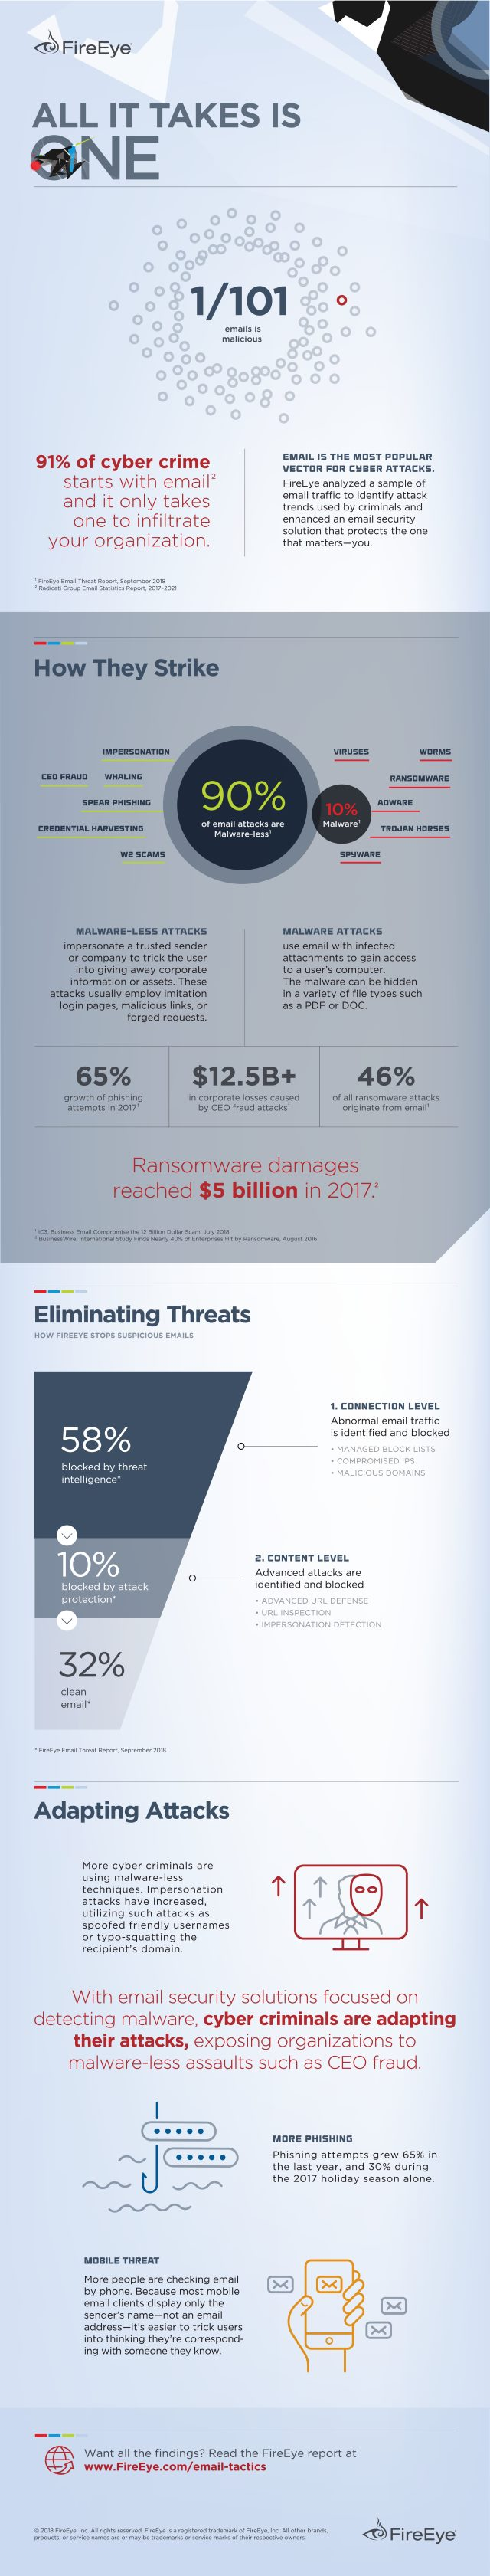 FireEye malwareless email graphic